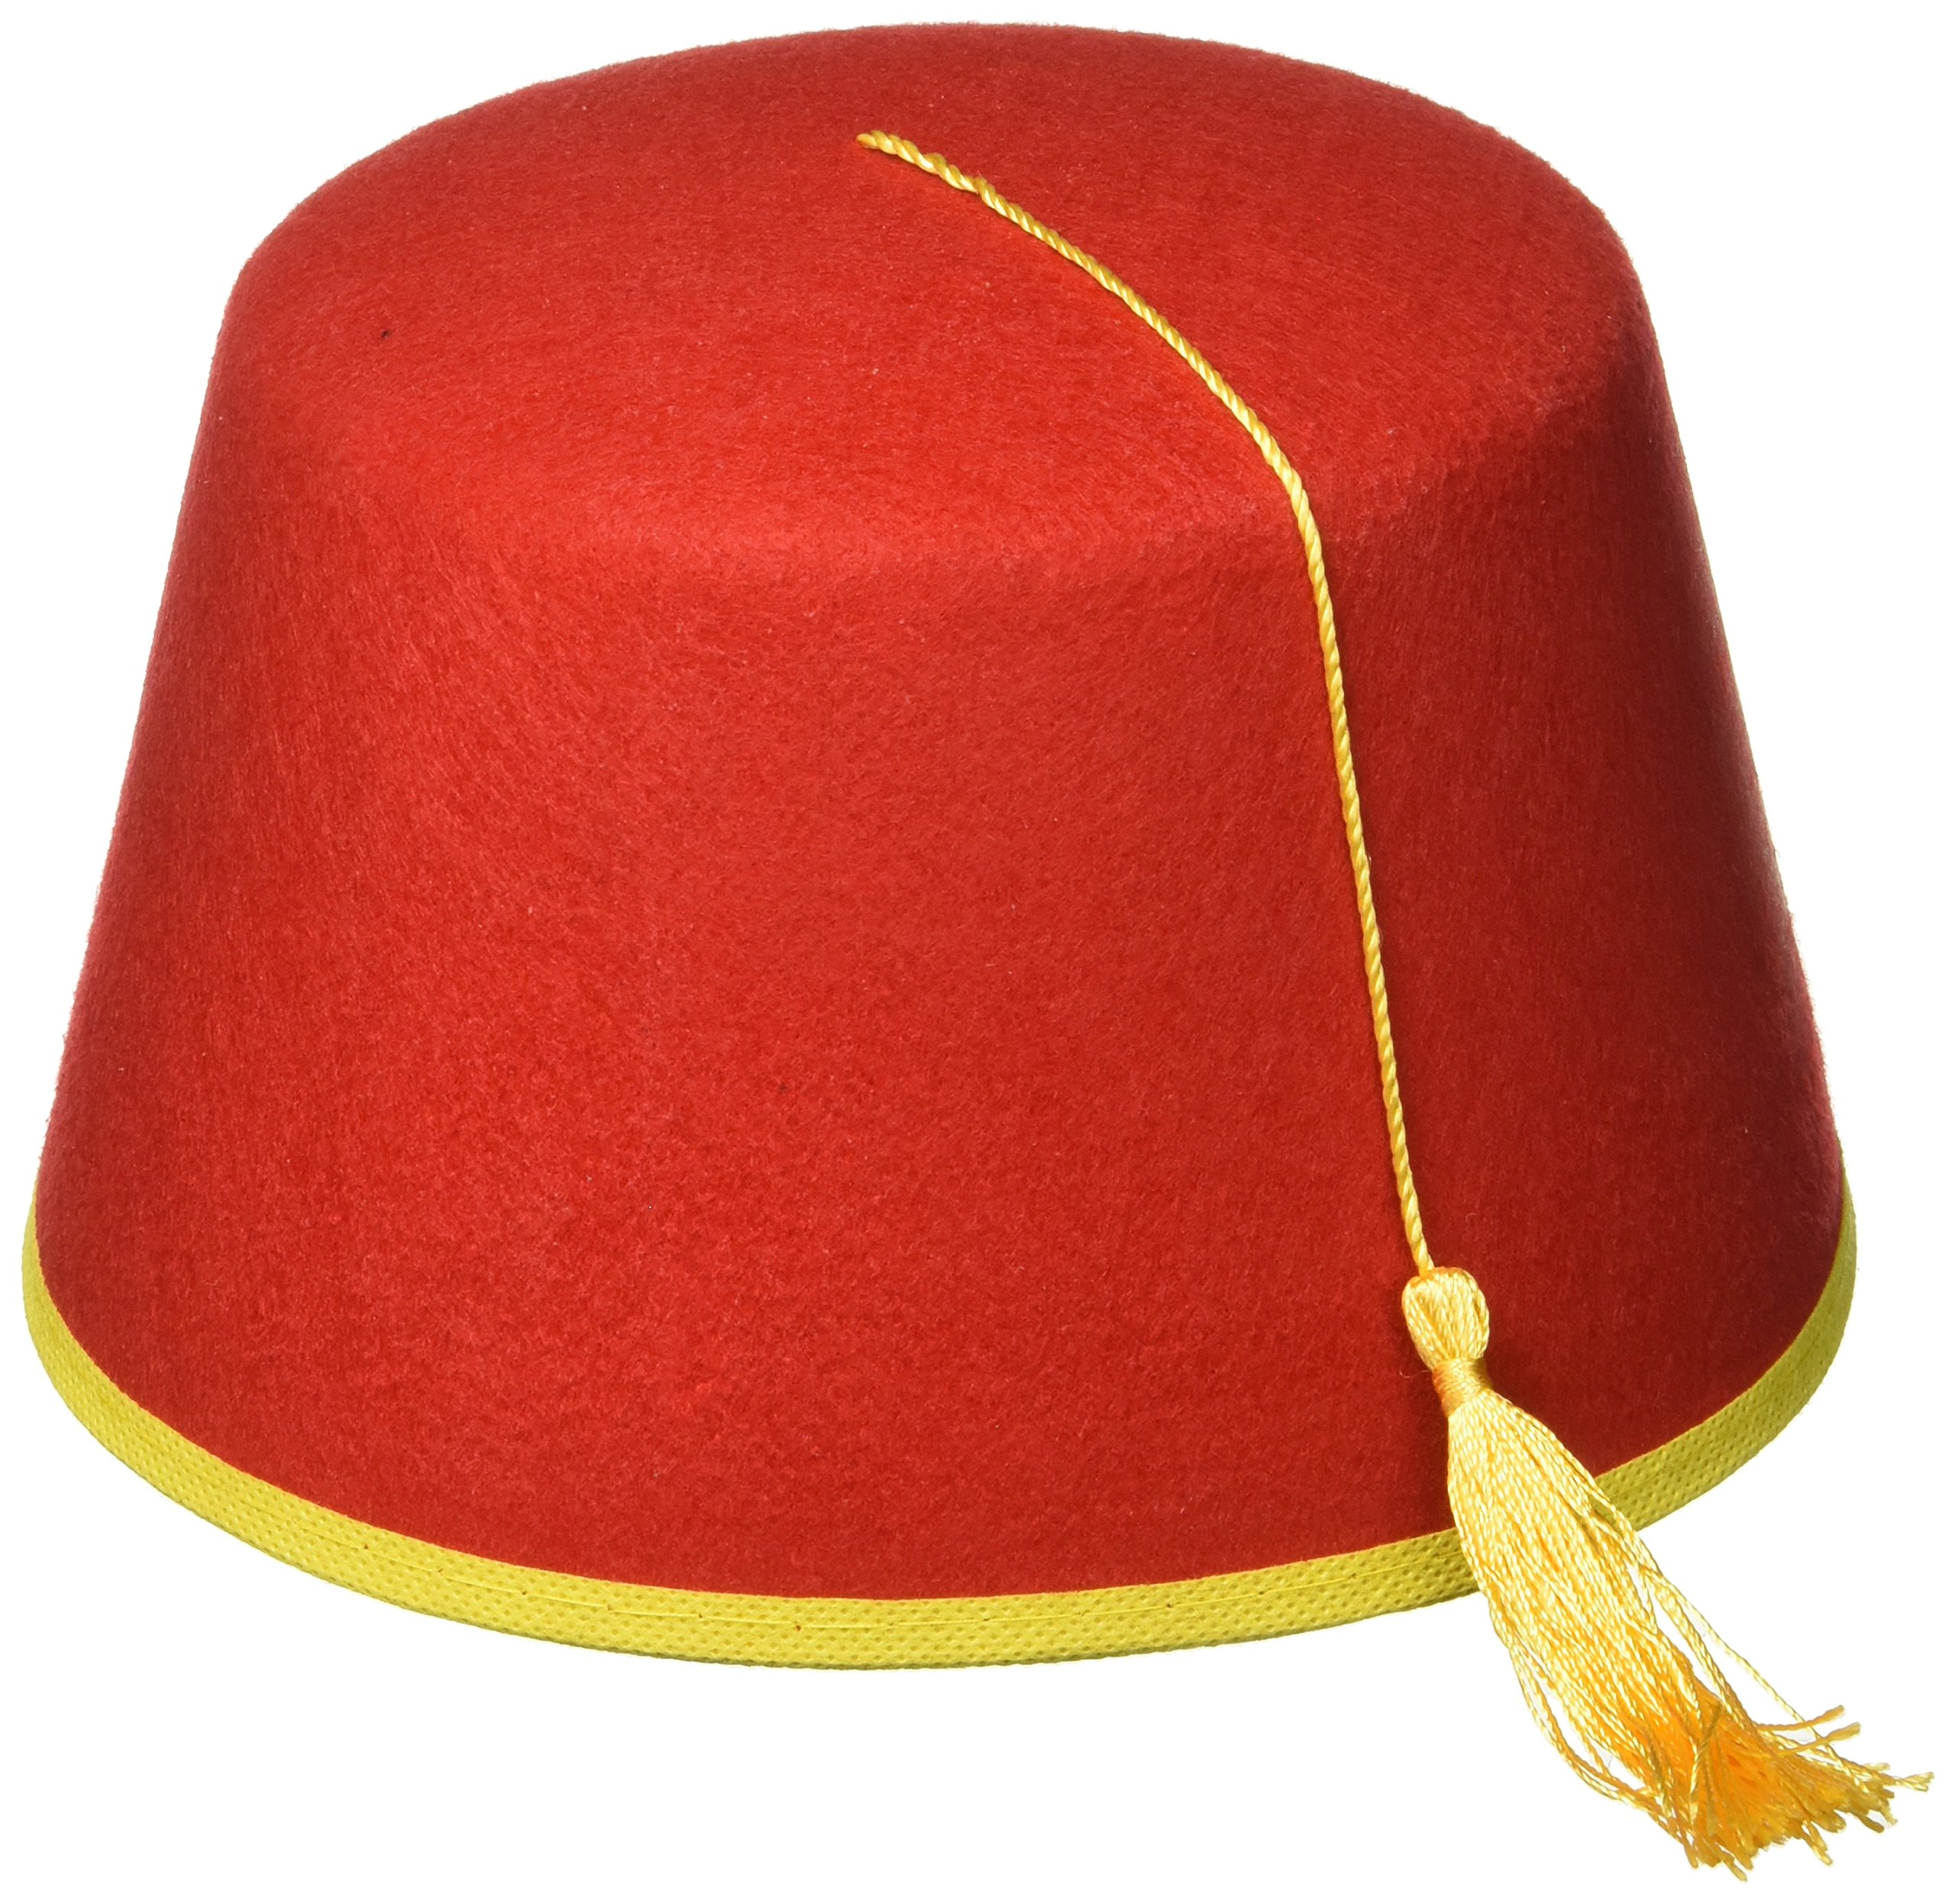 1a9503d2d5b Get Quotations · Forum Novelties Red Fez Felt Hat